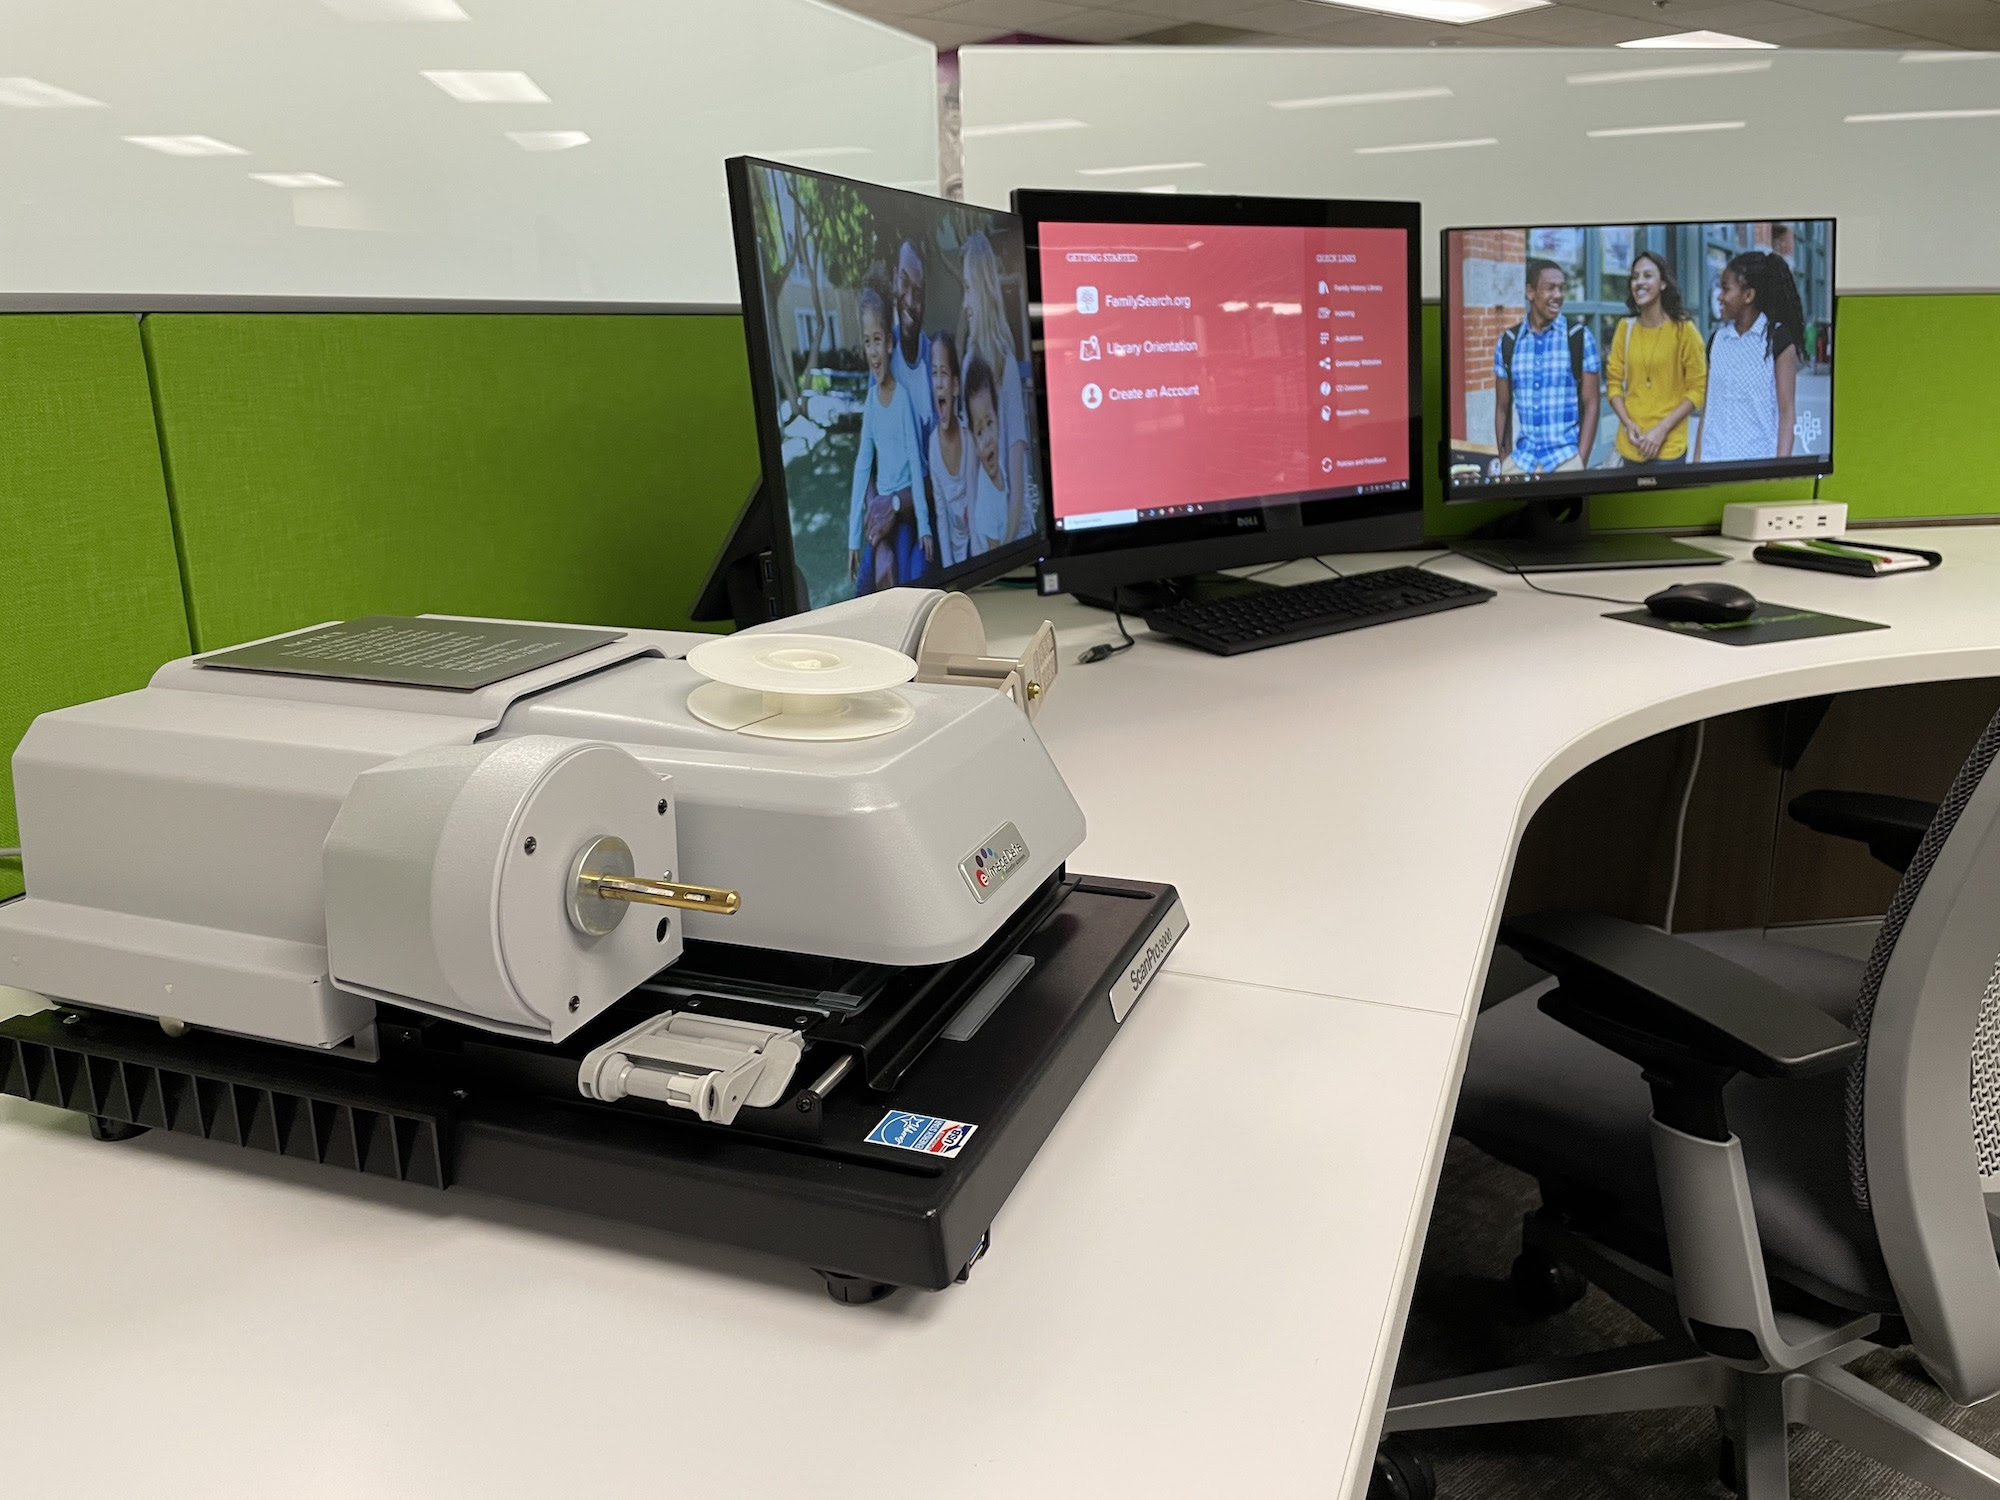 New patron film scanning station in the FamilySearch Family History Library